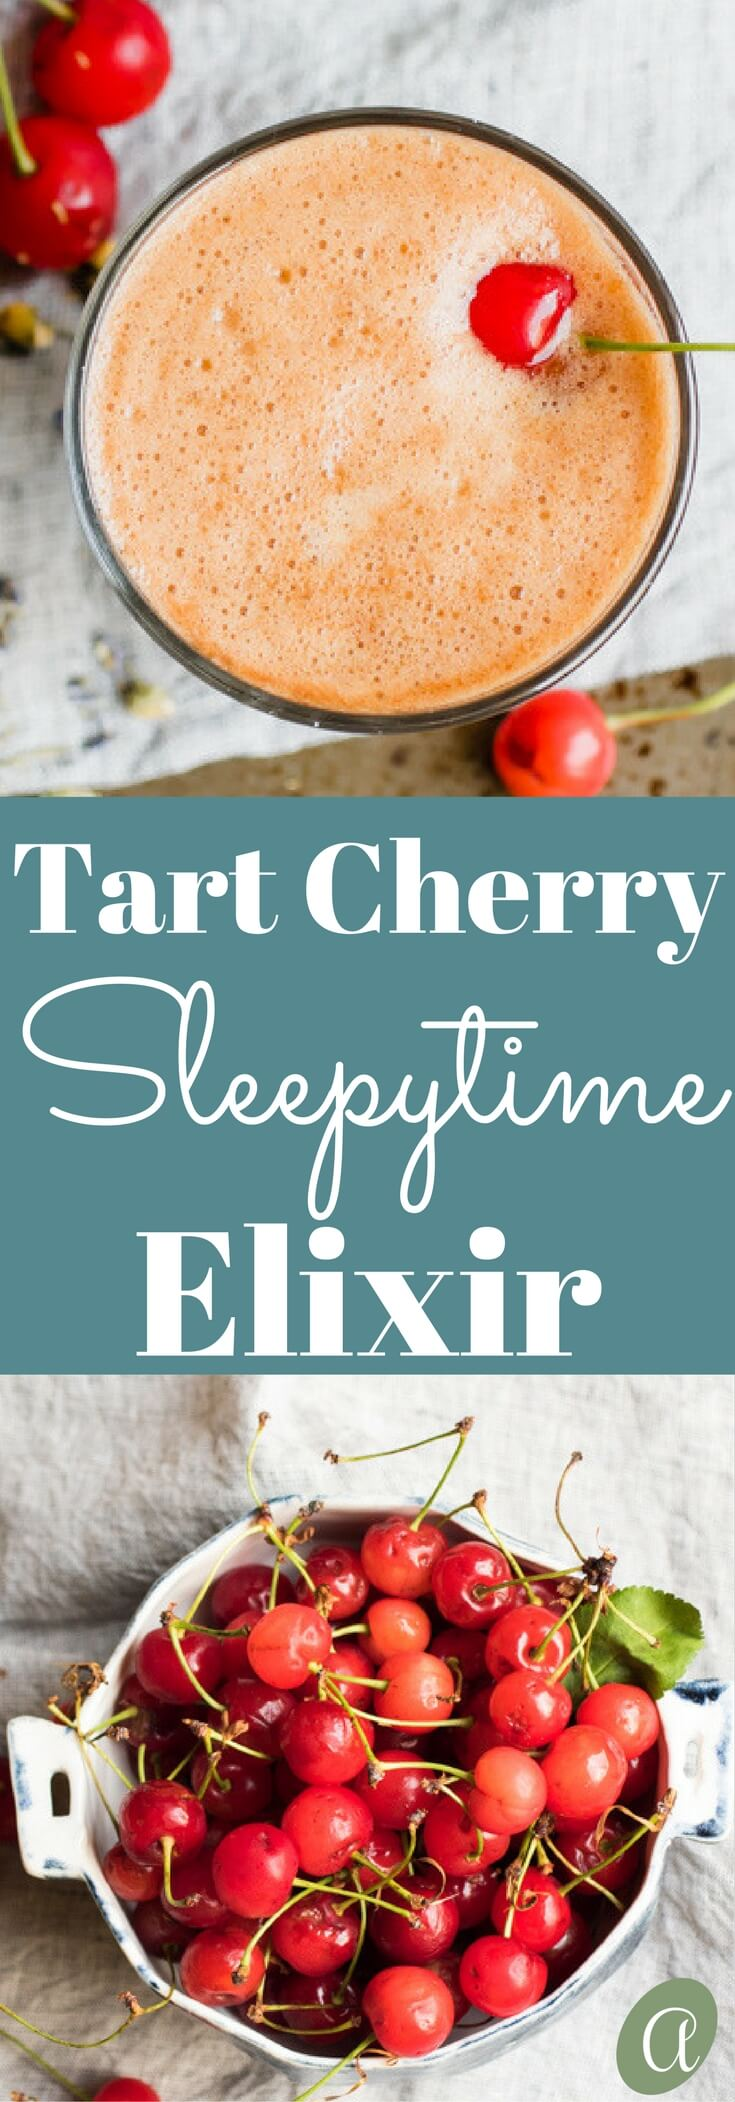 A warm sleepytime elixir with chamomile, lavender, and tart cherry to encourage deep restful sleep.